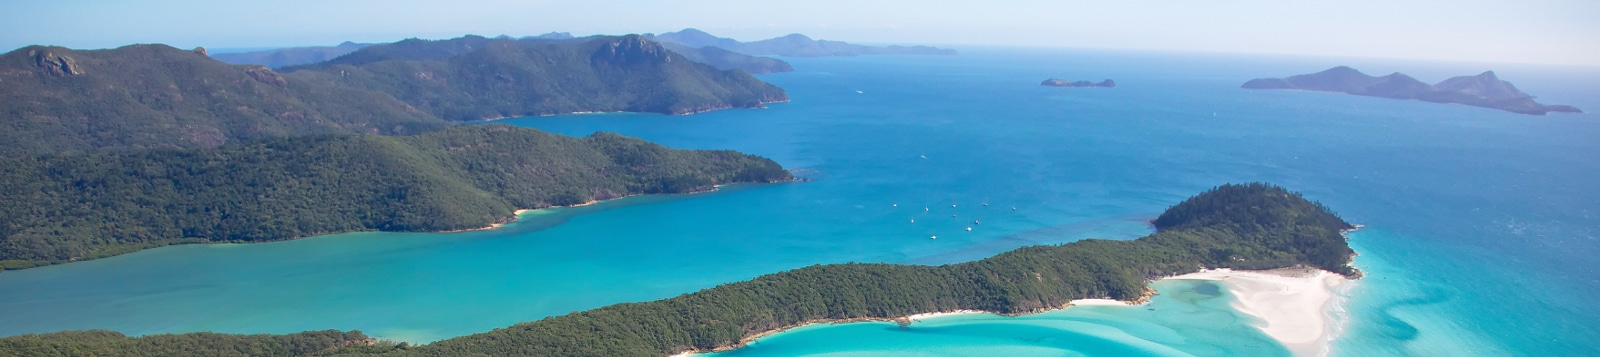 Yacht Charter Queensland, Private and Luxury Yacht Charter Australia And New Zealand